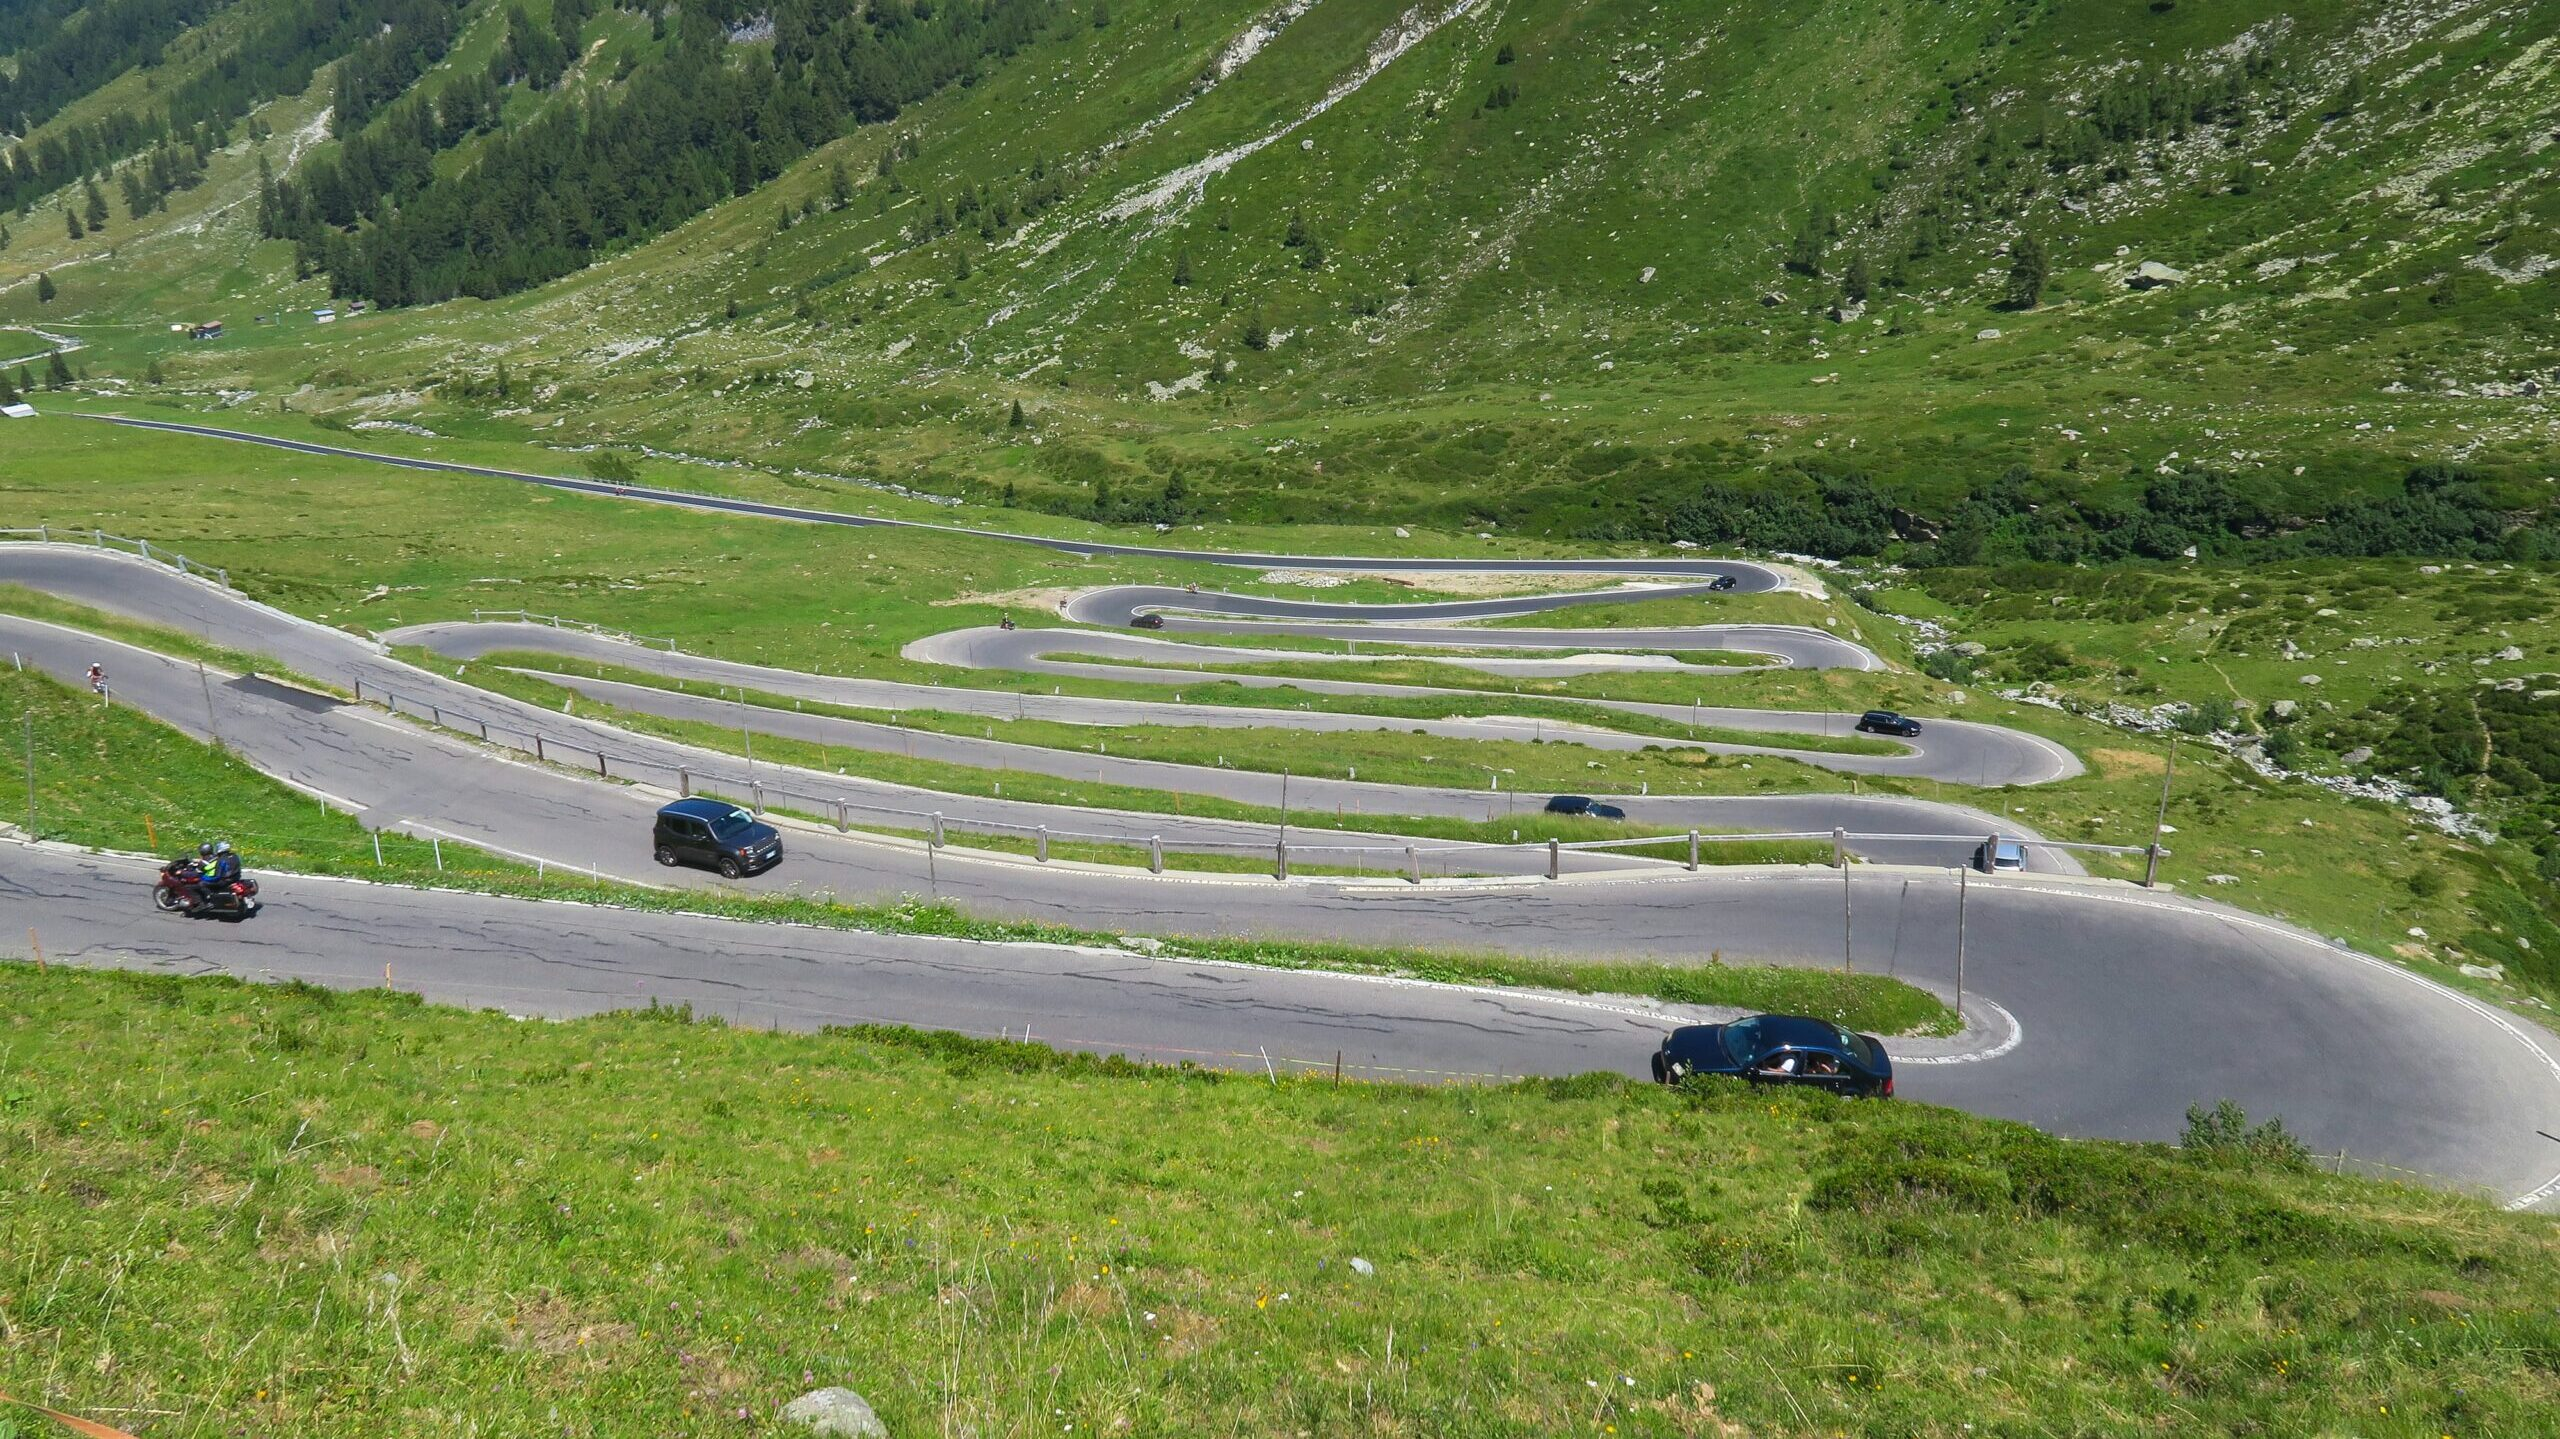 A curving road in a mountainous landscape